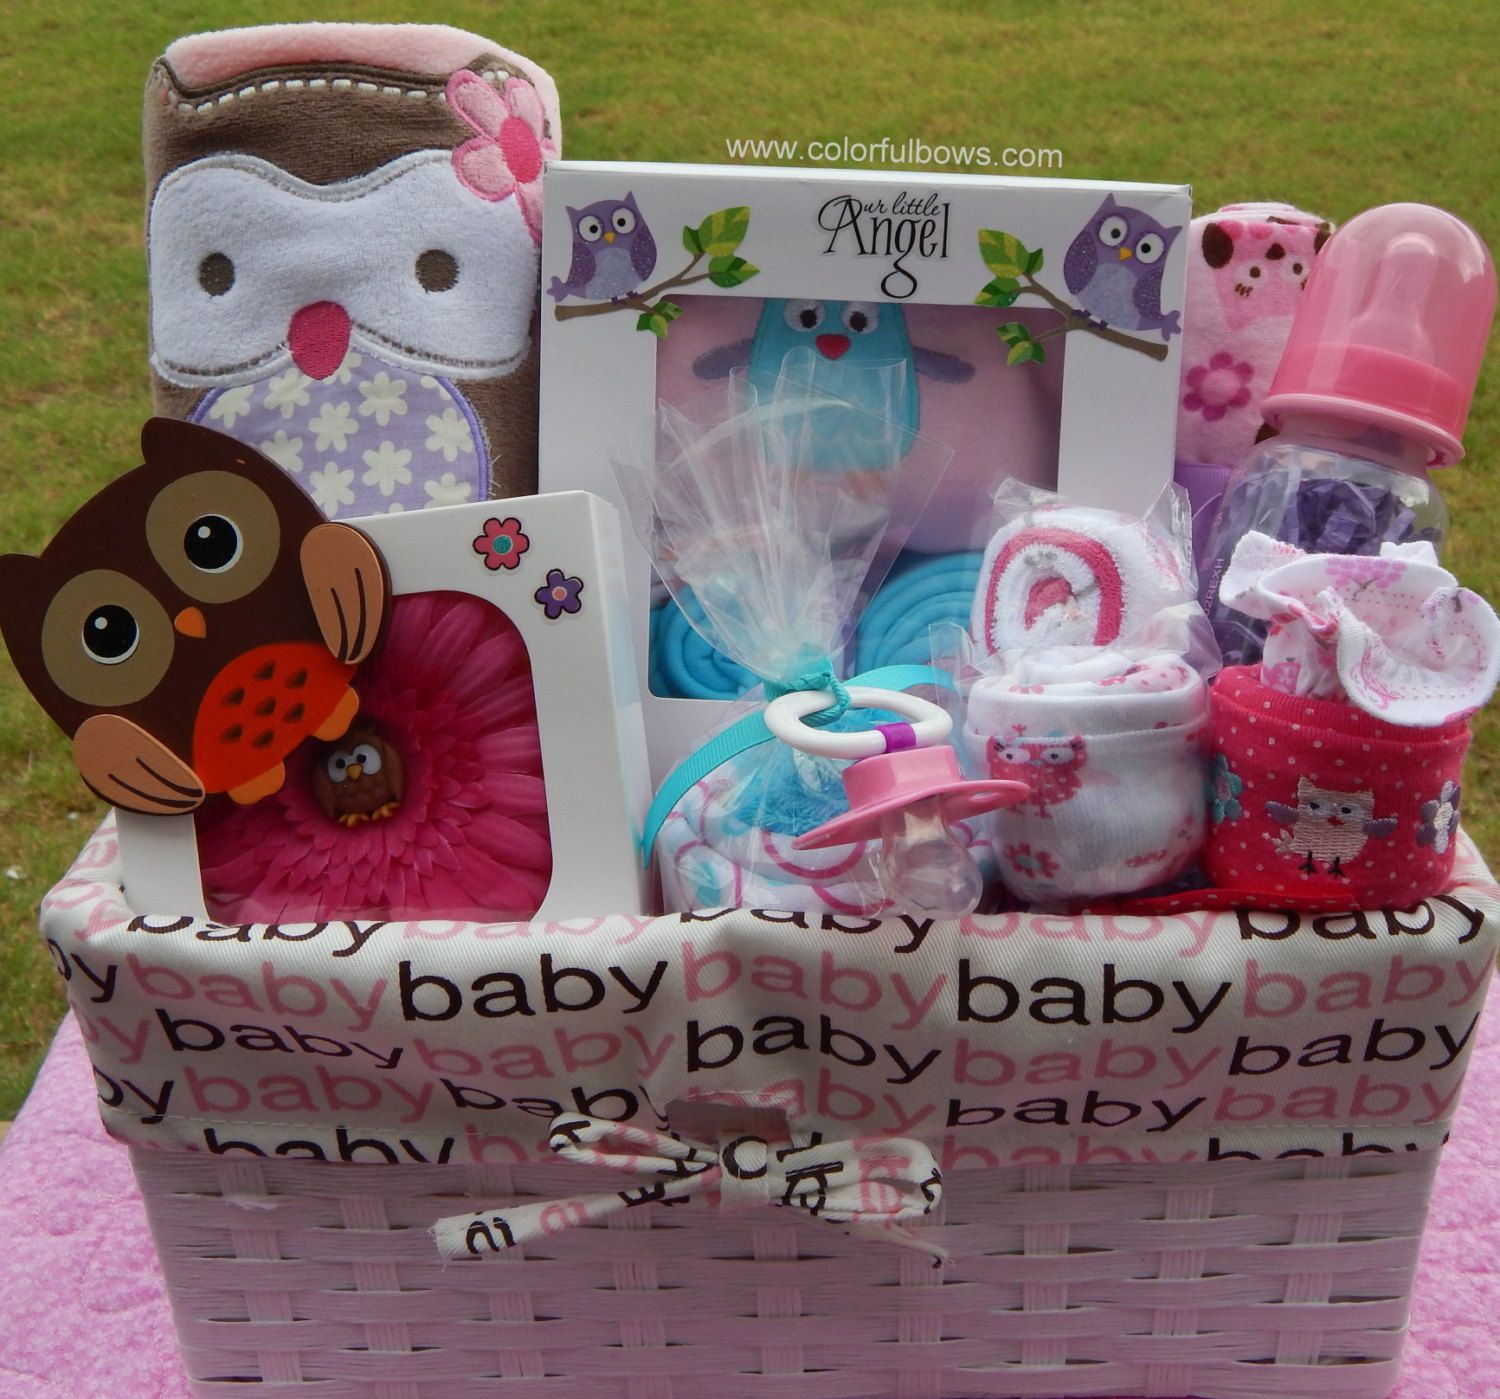 baby owl baby shower theme premium plus baby girl gift basket ready to ship forest baby shower baby shower gift ideas cute baby gift